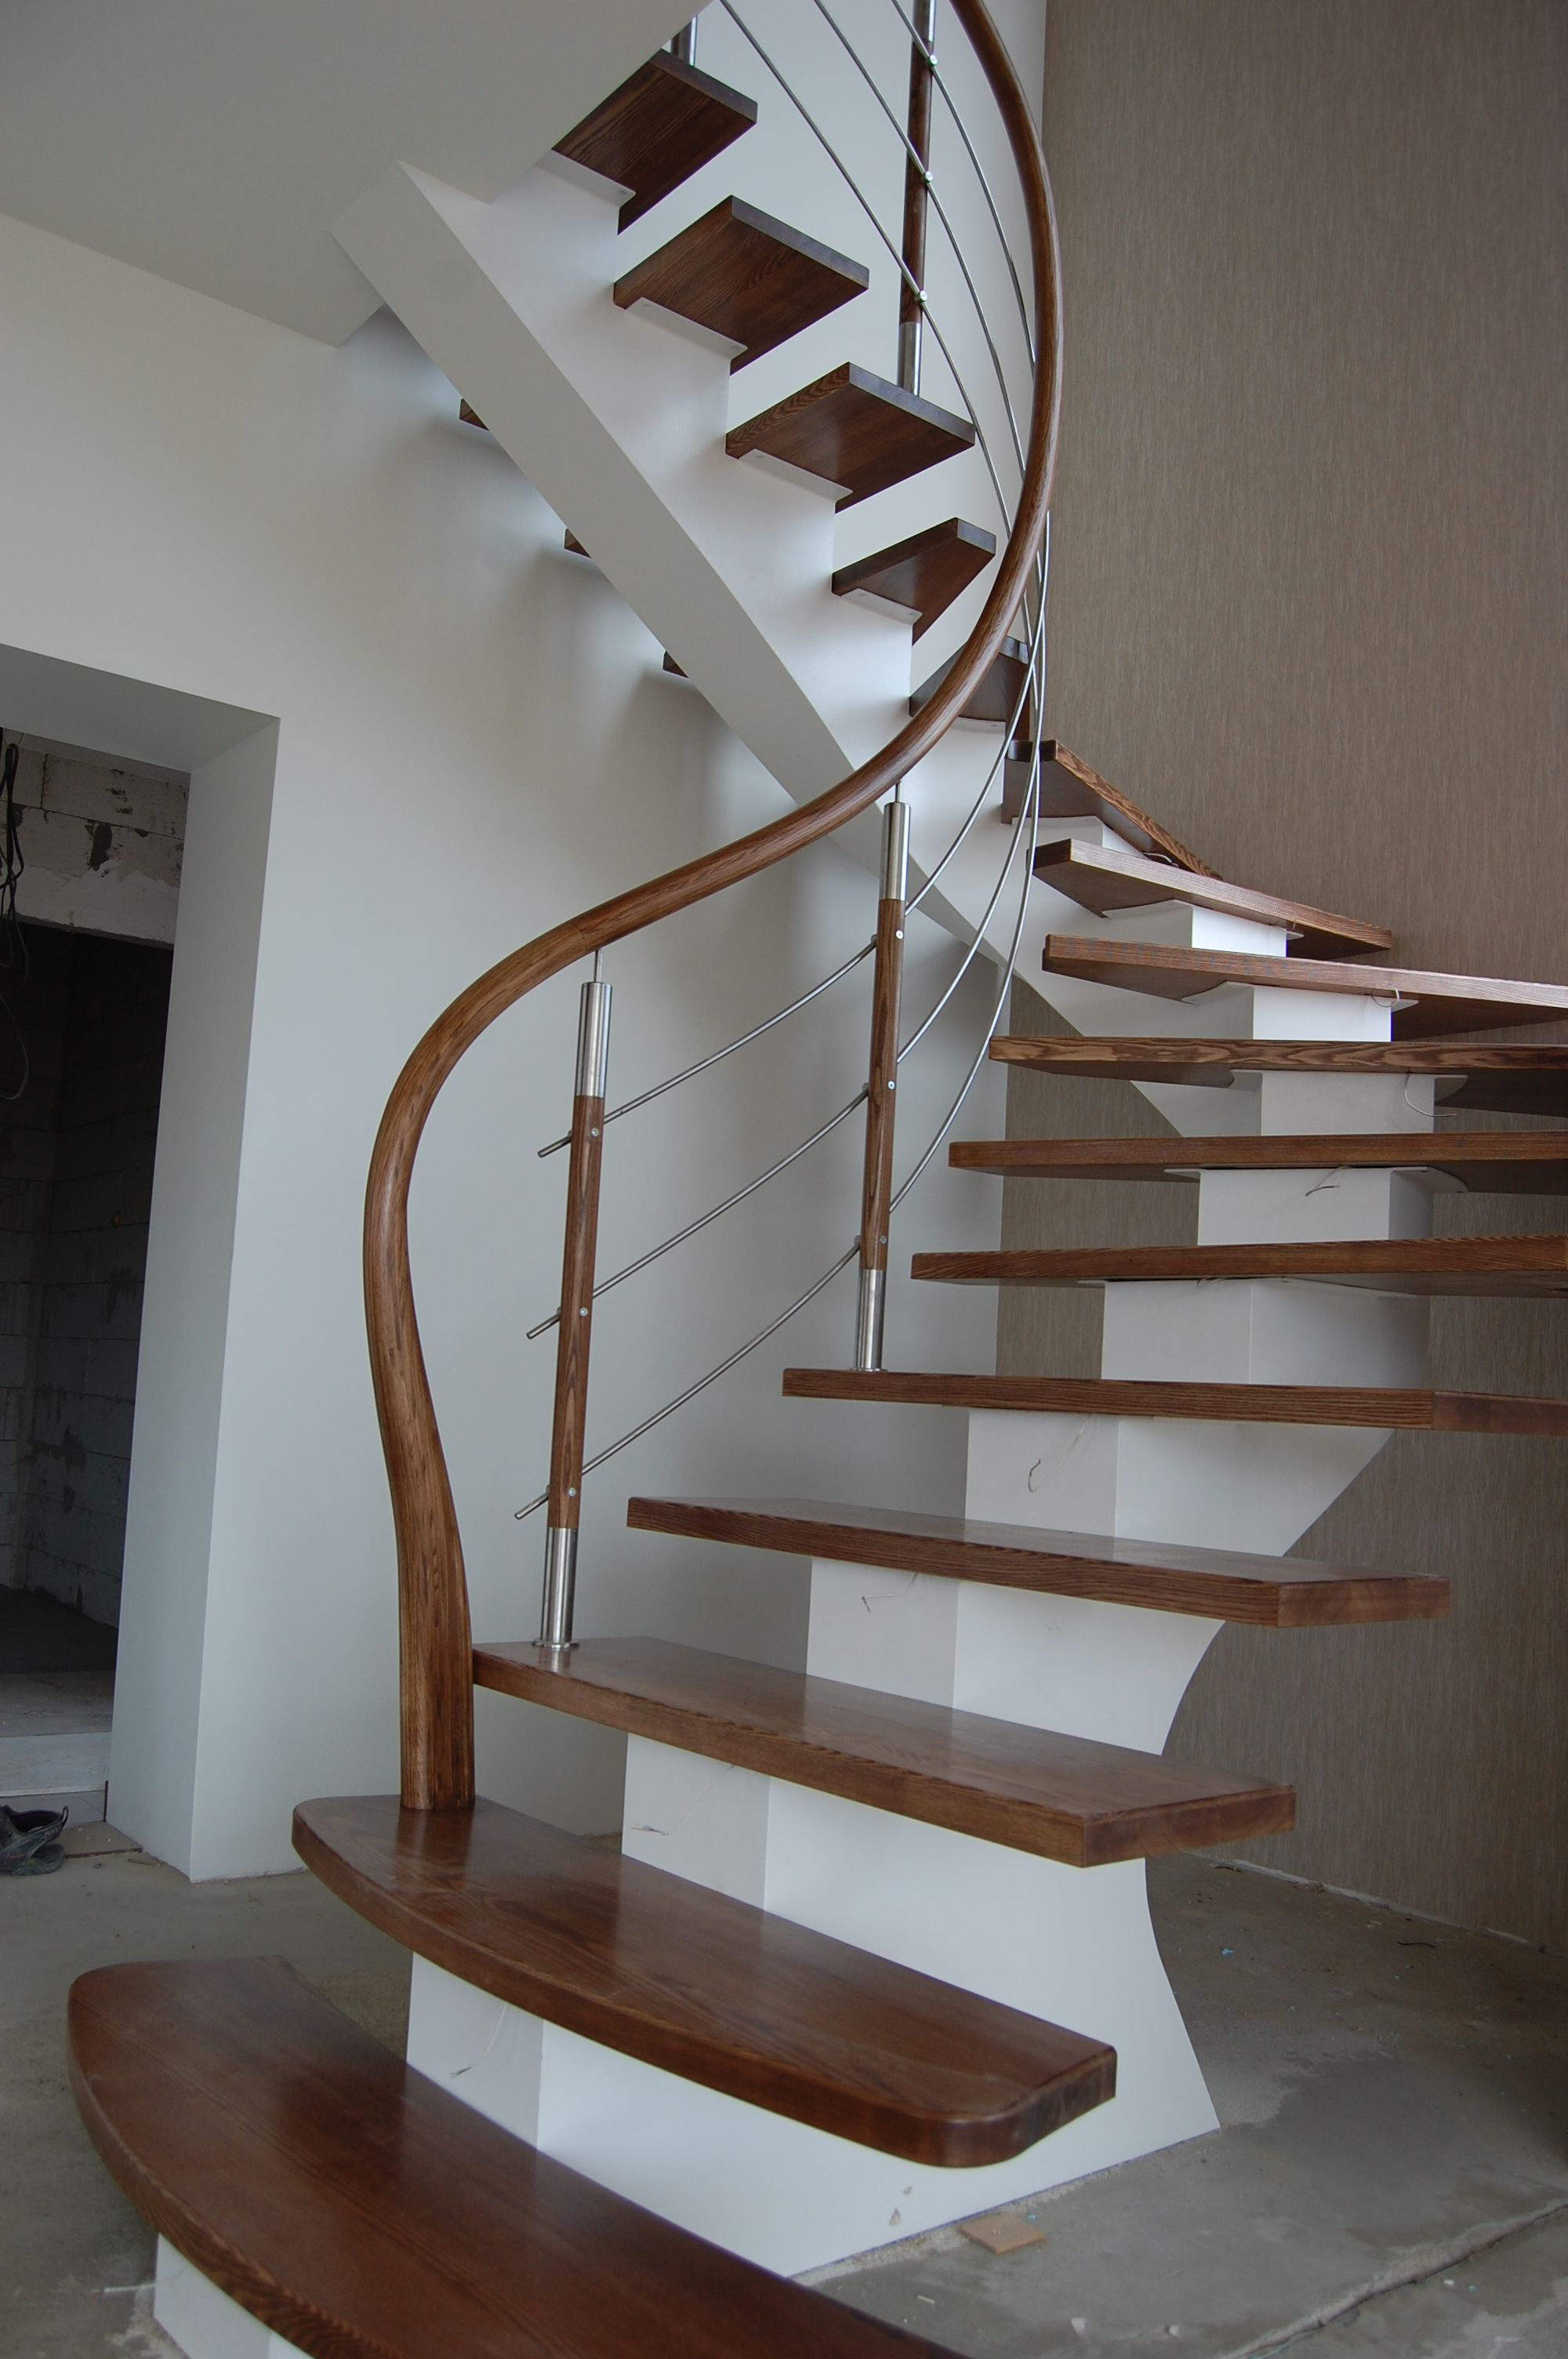 Best Steel Construction Railings From Stainless Steel With 400 x 300